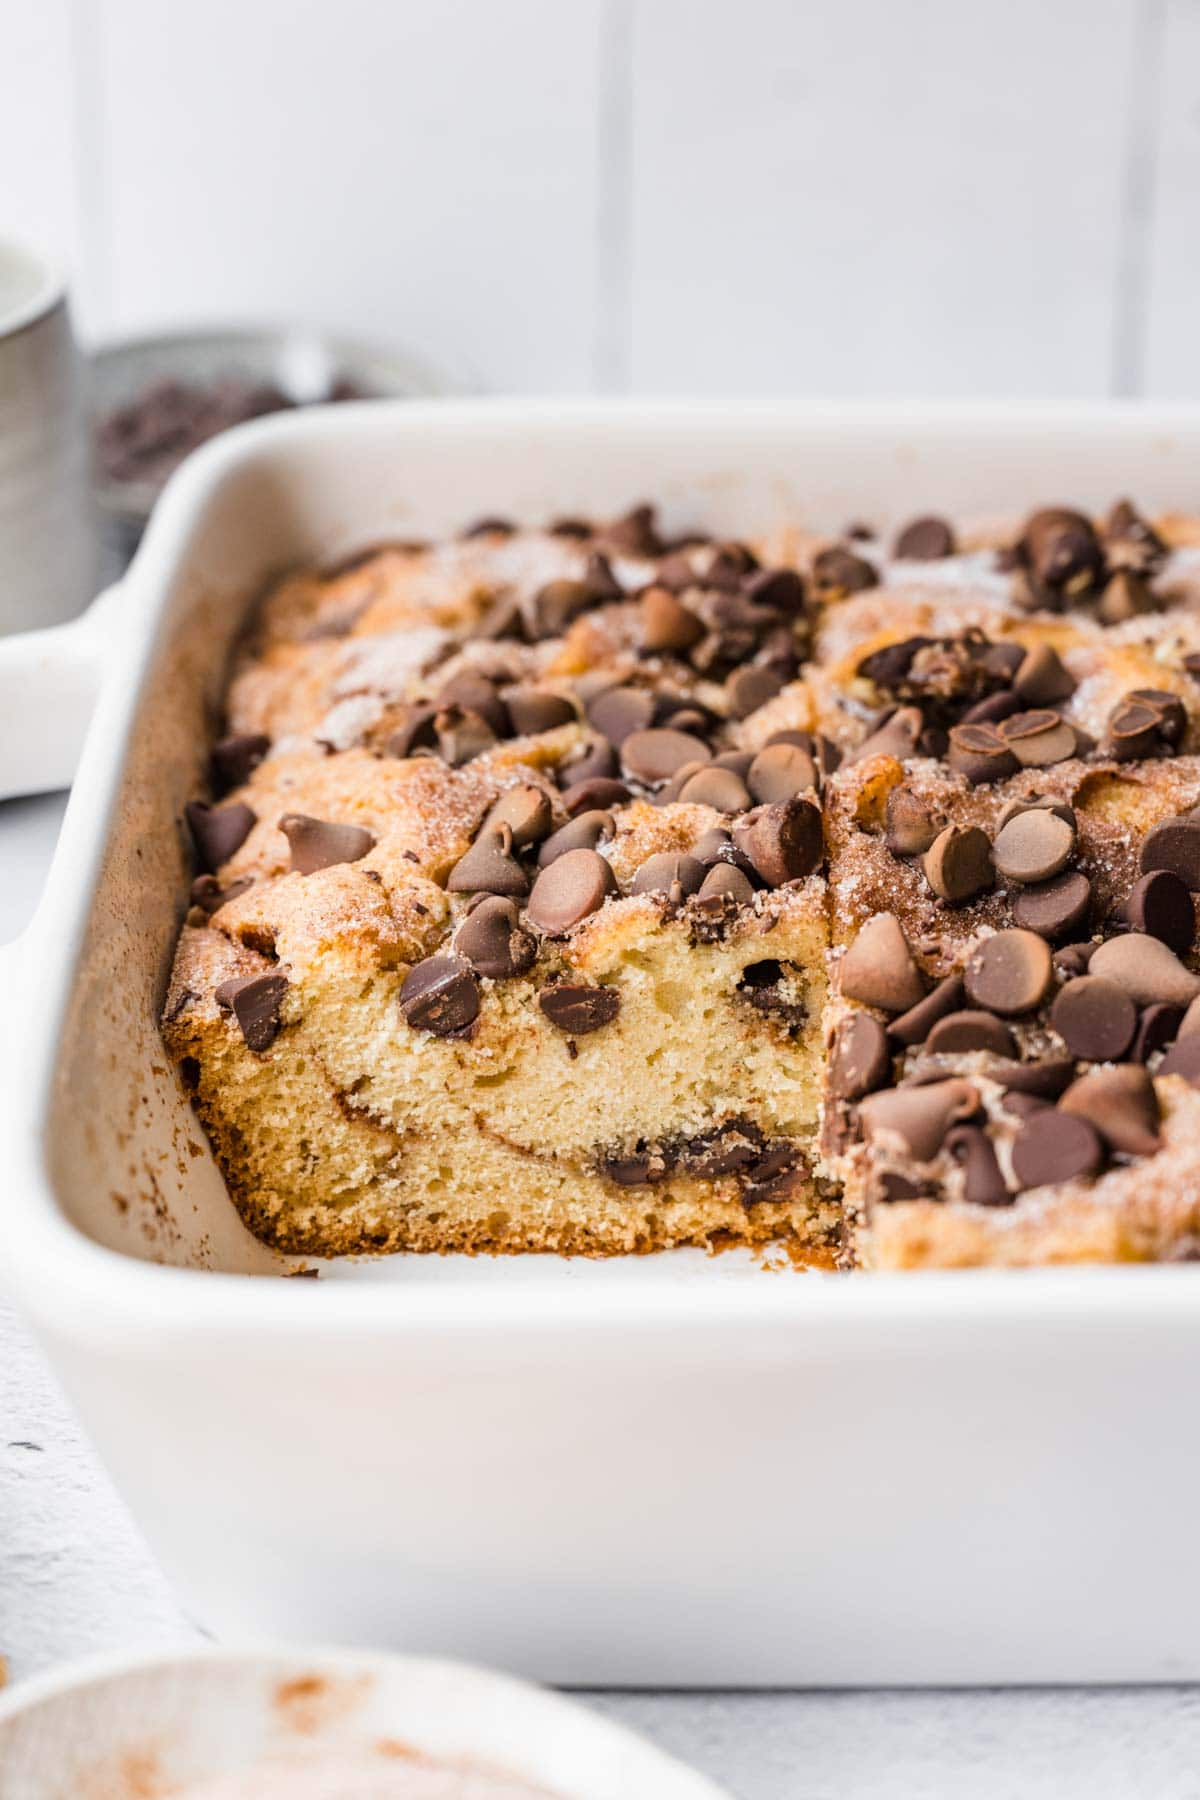 Chocolate Chip Coffee Cake sliced in baking pan